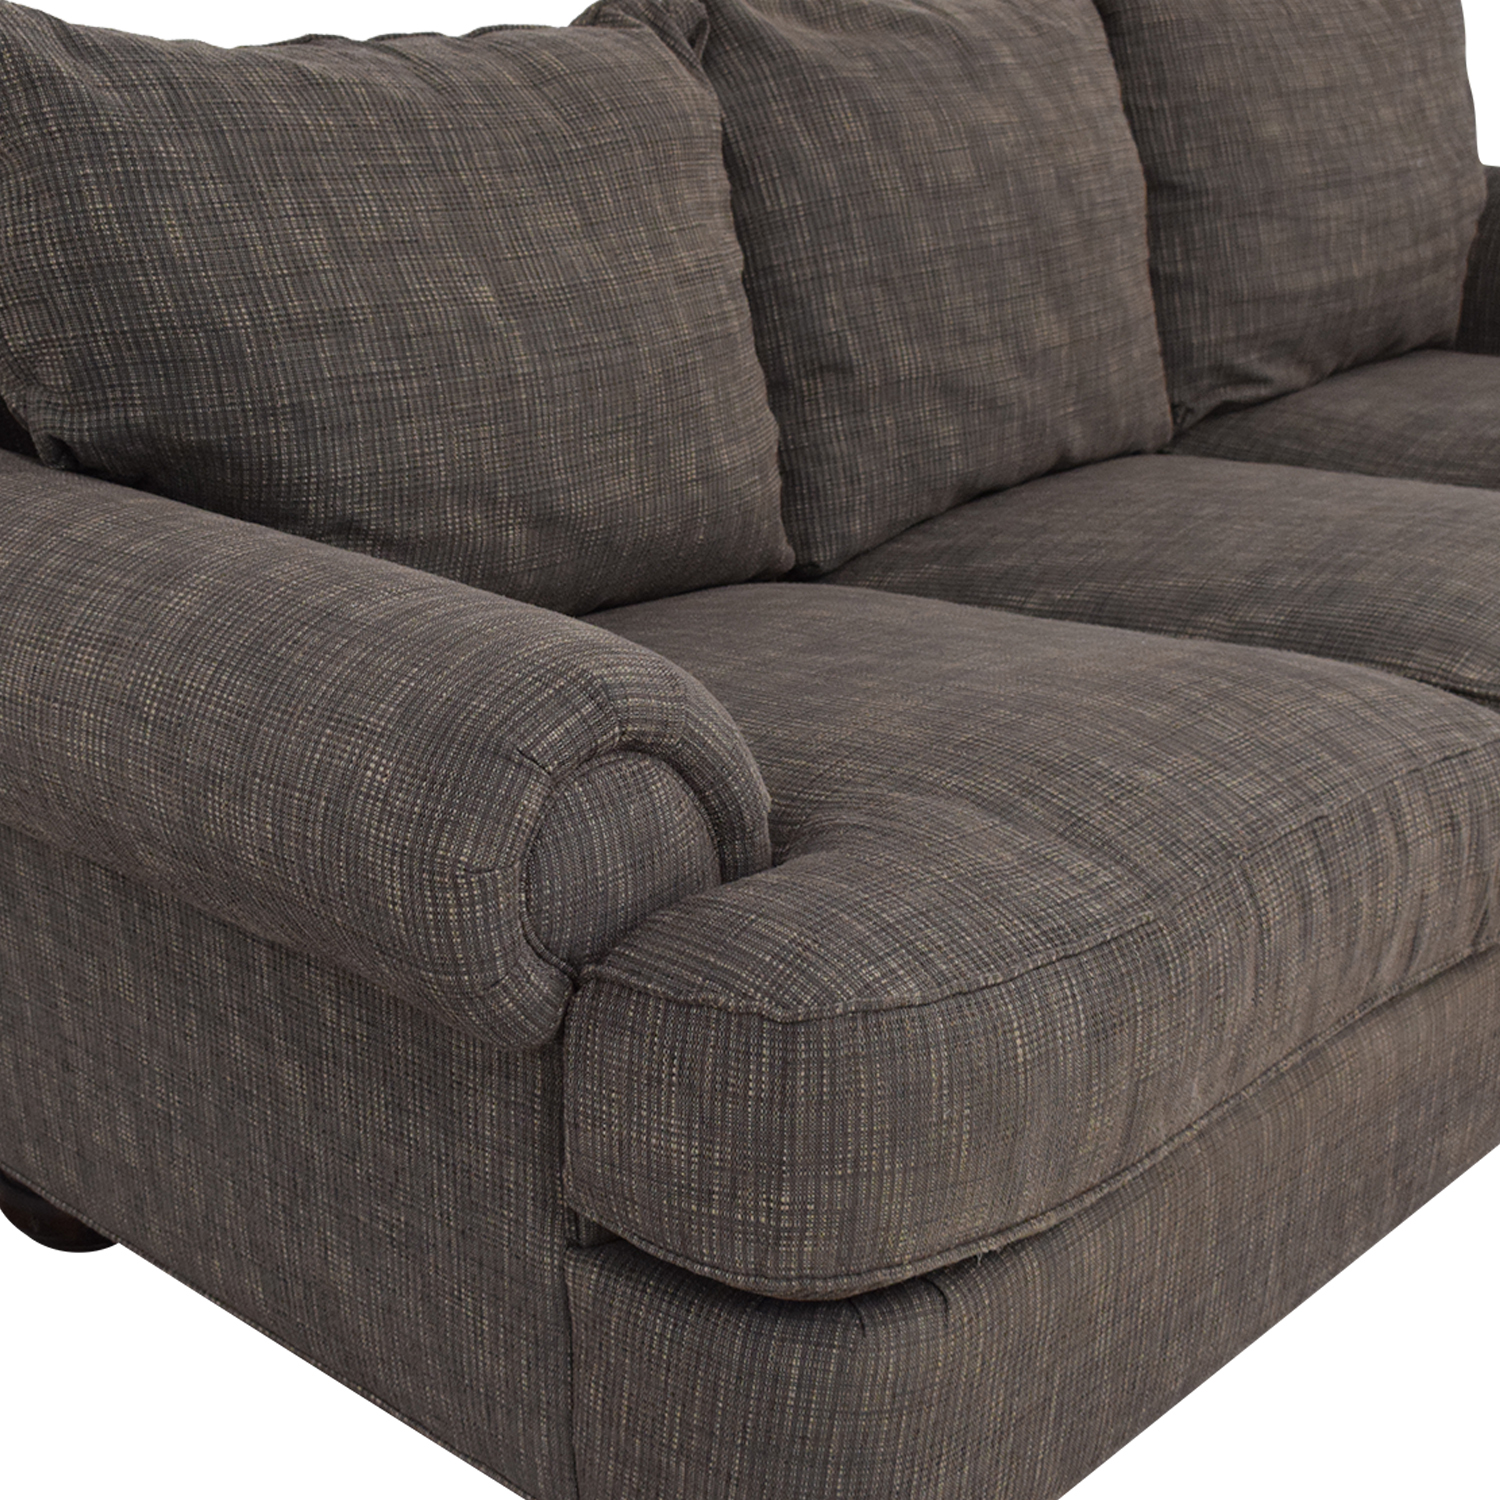 Thomasville Thomasville Oversize Three Cushion Sofa for sale